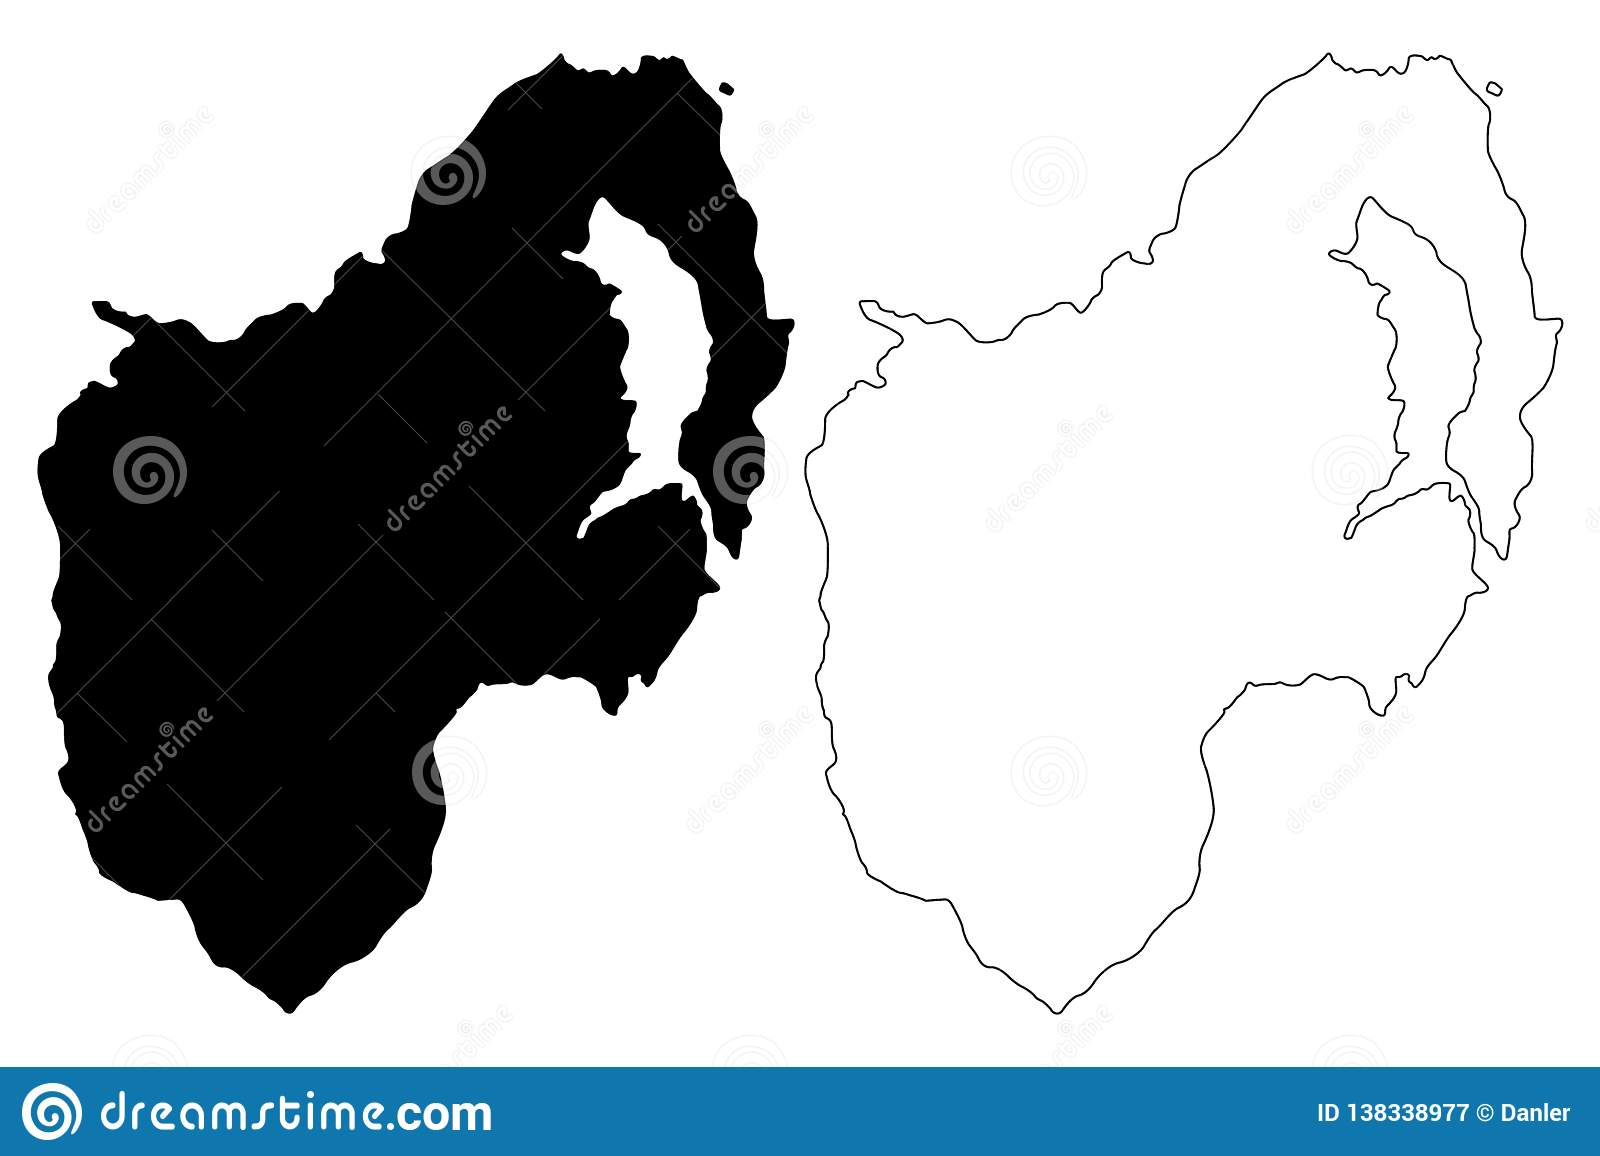 Map Of Northern Ireland Counties.County Down Map Vector Stock Vector Illustration Of Europe 138338977